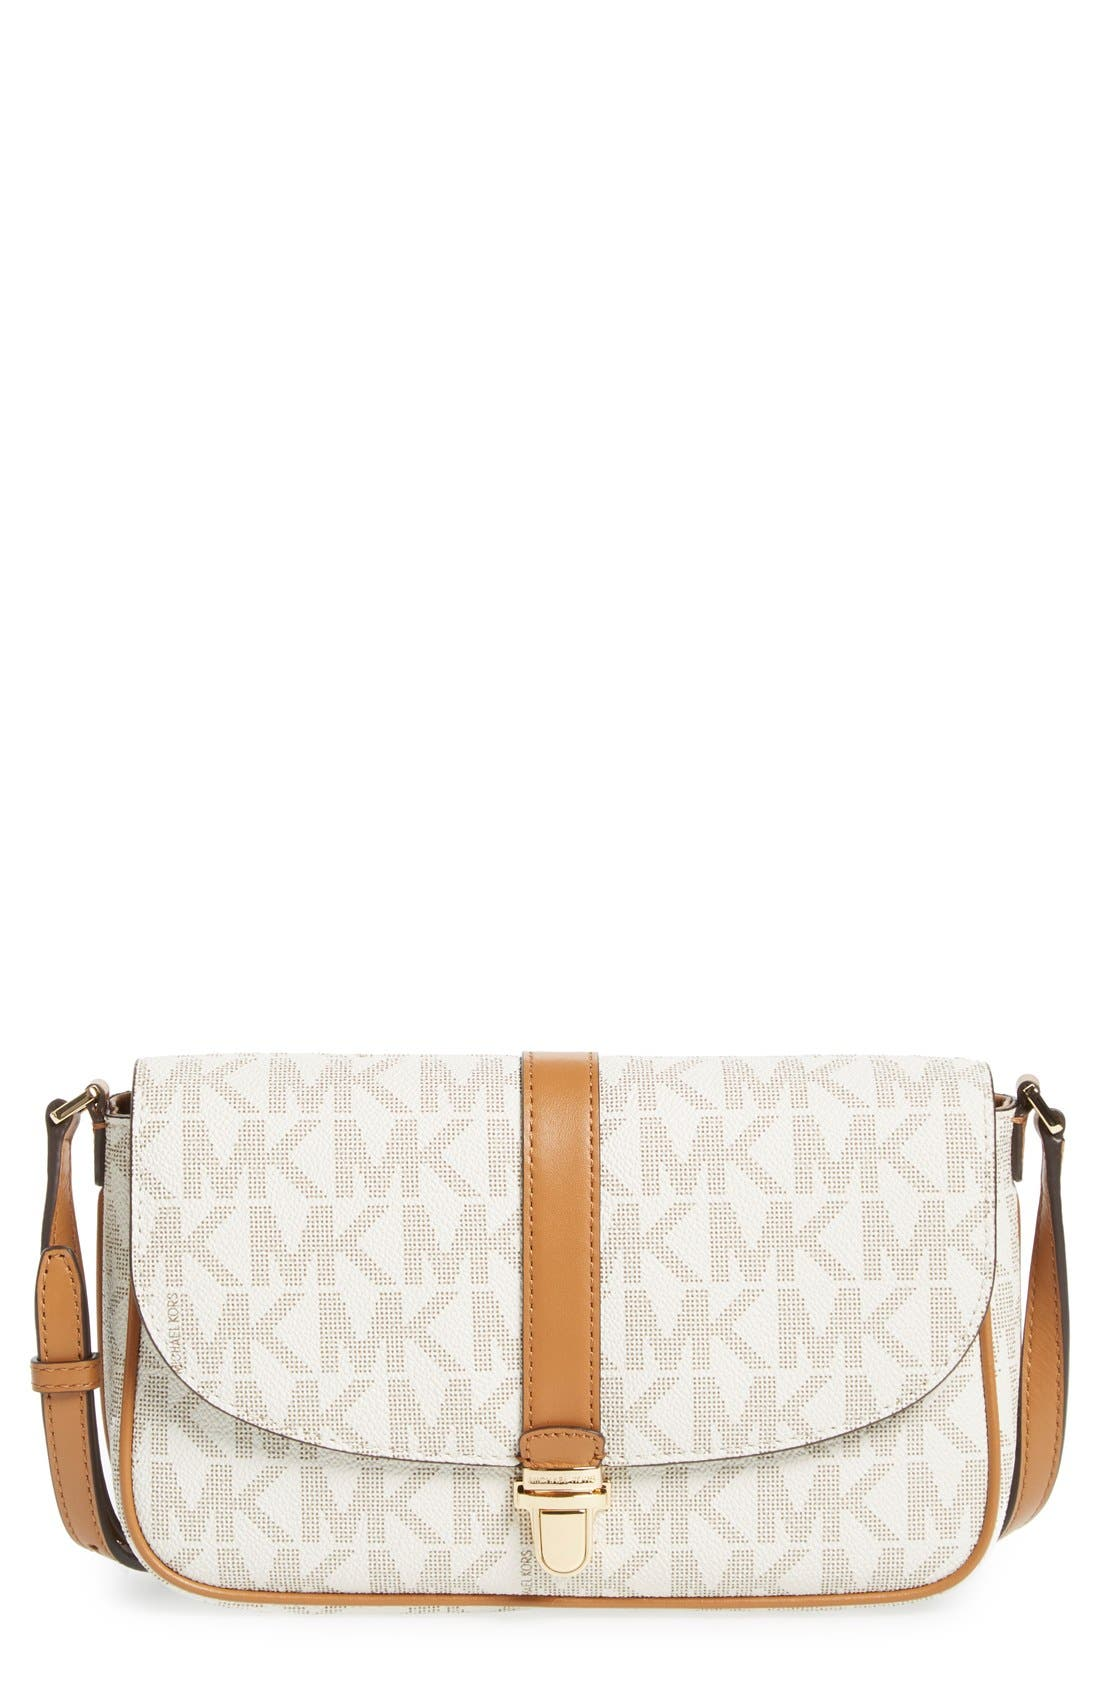 MICHAEL MICHAEL KORS 'Large Charlton' Crossbody Bag, Main, color, 100